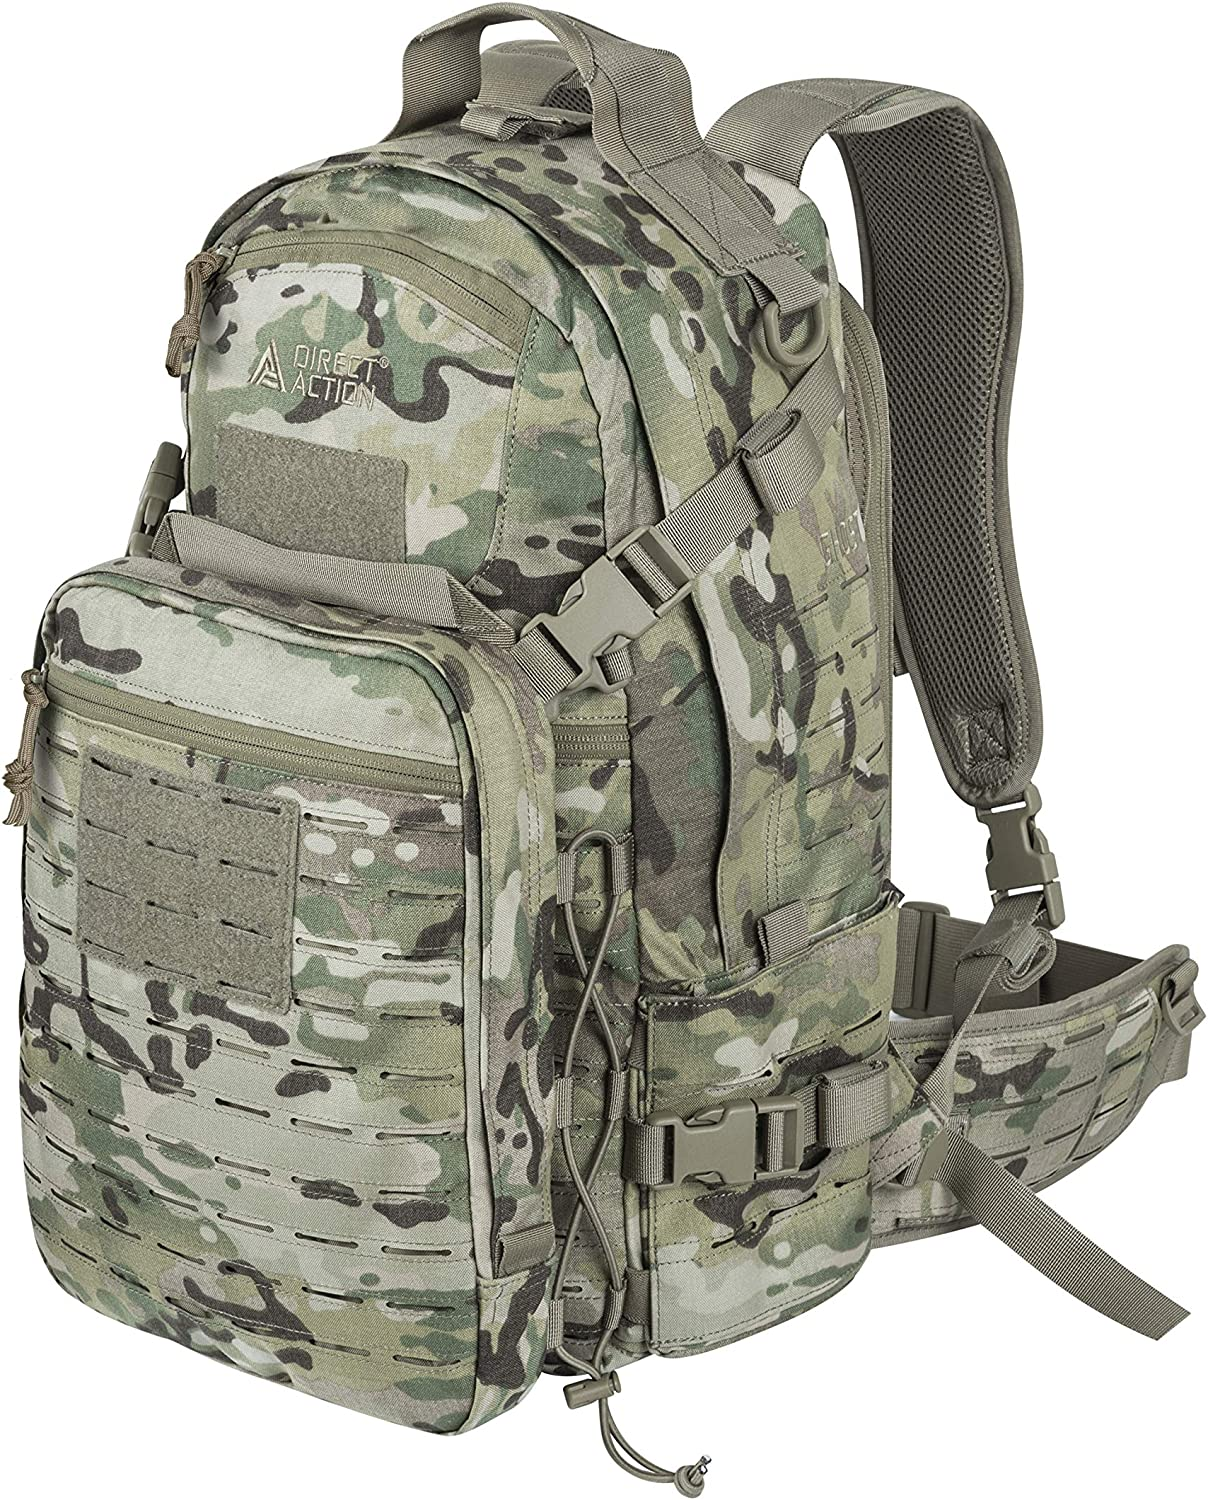 Direct Action Ghost Tactical 31 Liter Capacity Max 41% OFF Backpack Our shop OFFers the best service